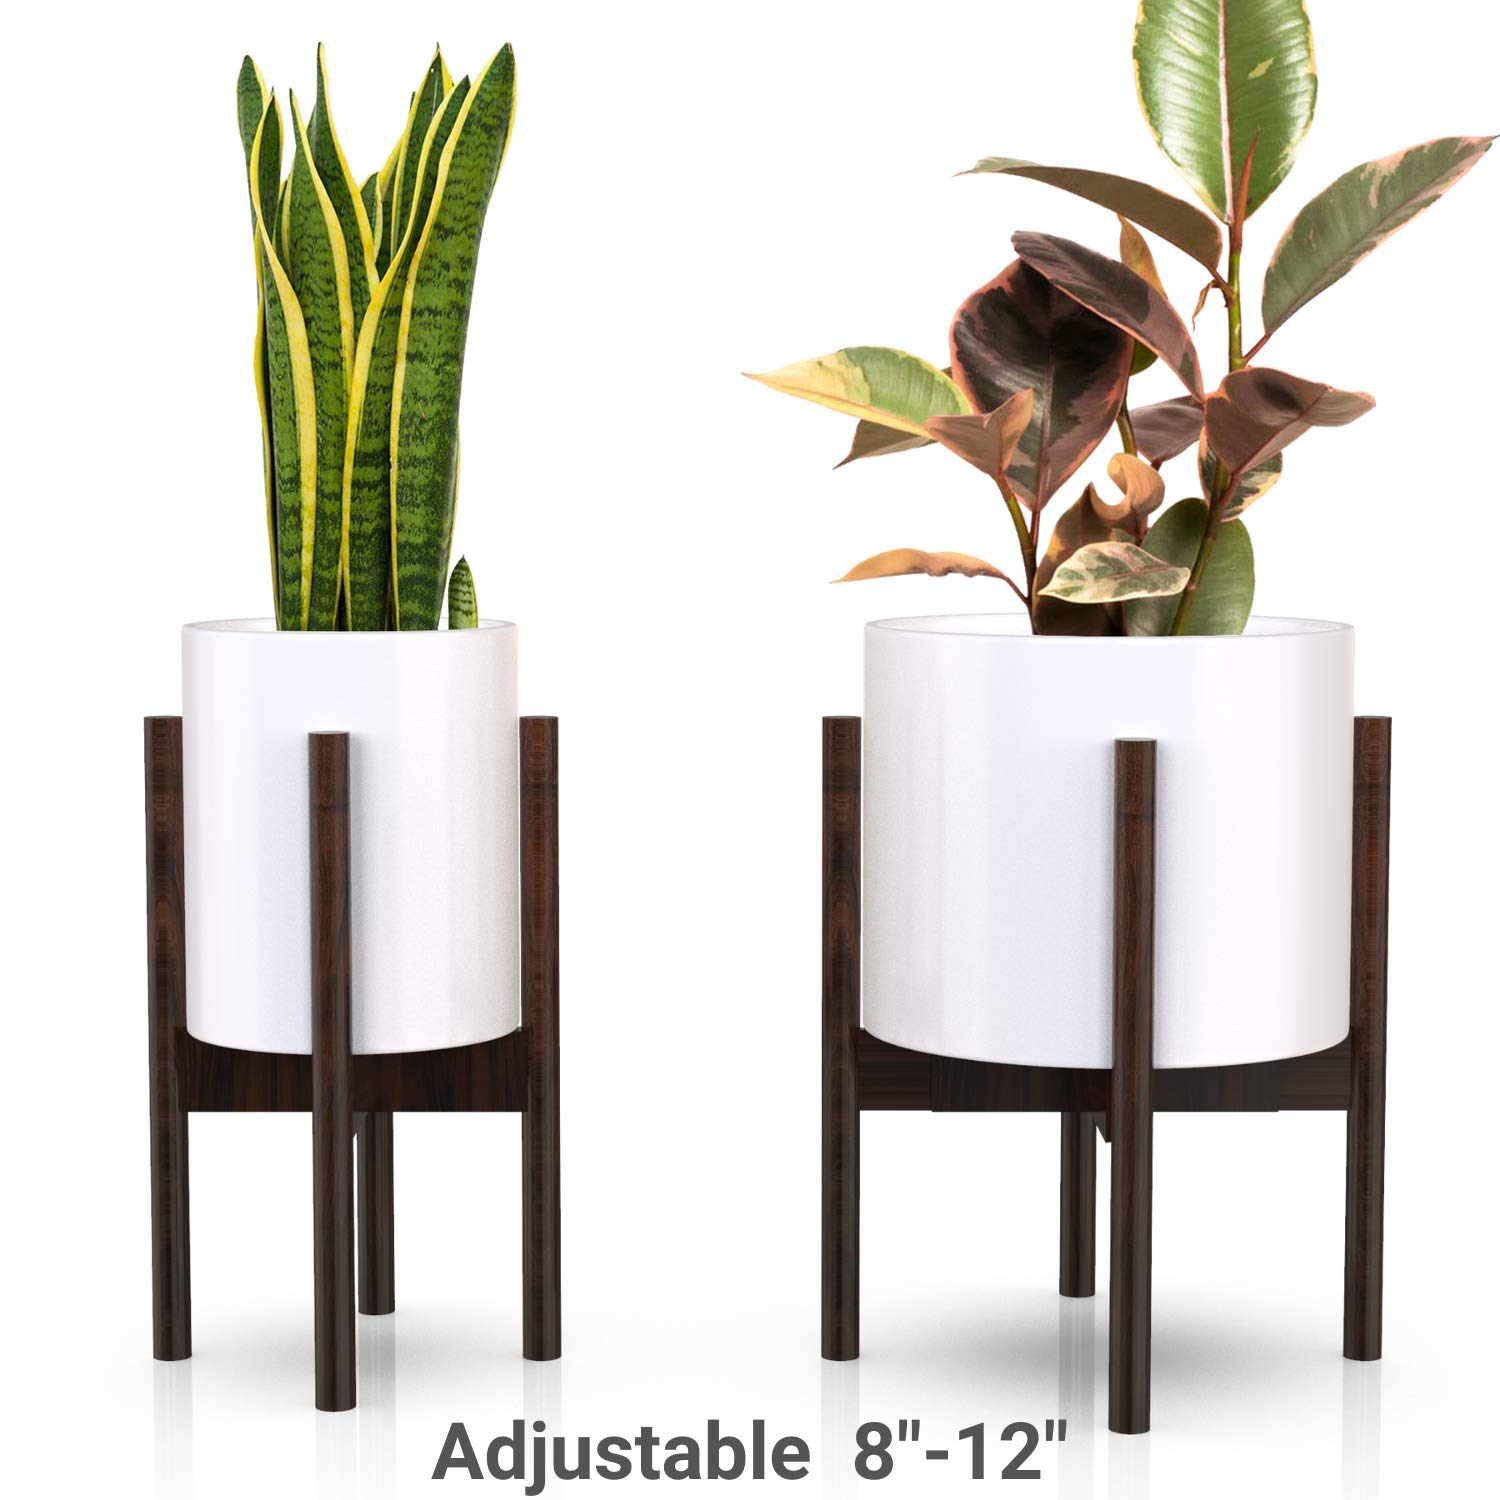 Mid Century Plant Stand - Non-Wobbly - Modern Indoor Plant Holder for House Plants, Home Decor - Wood - Fits Planter 8 to 12 Inches - Excludes Plant Pot (Dark Brown 1-Pack)